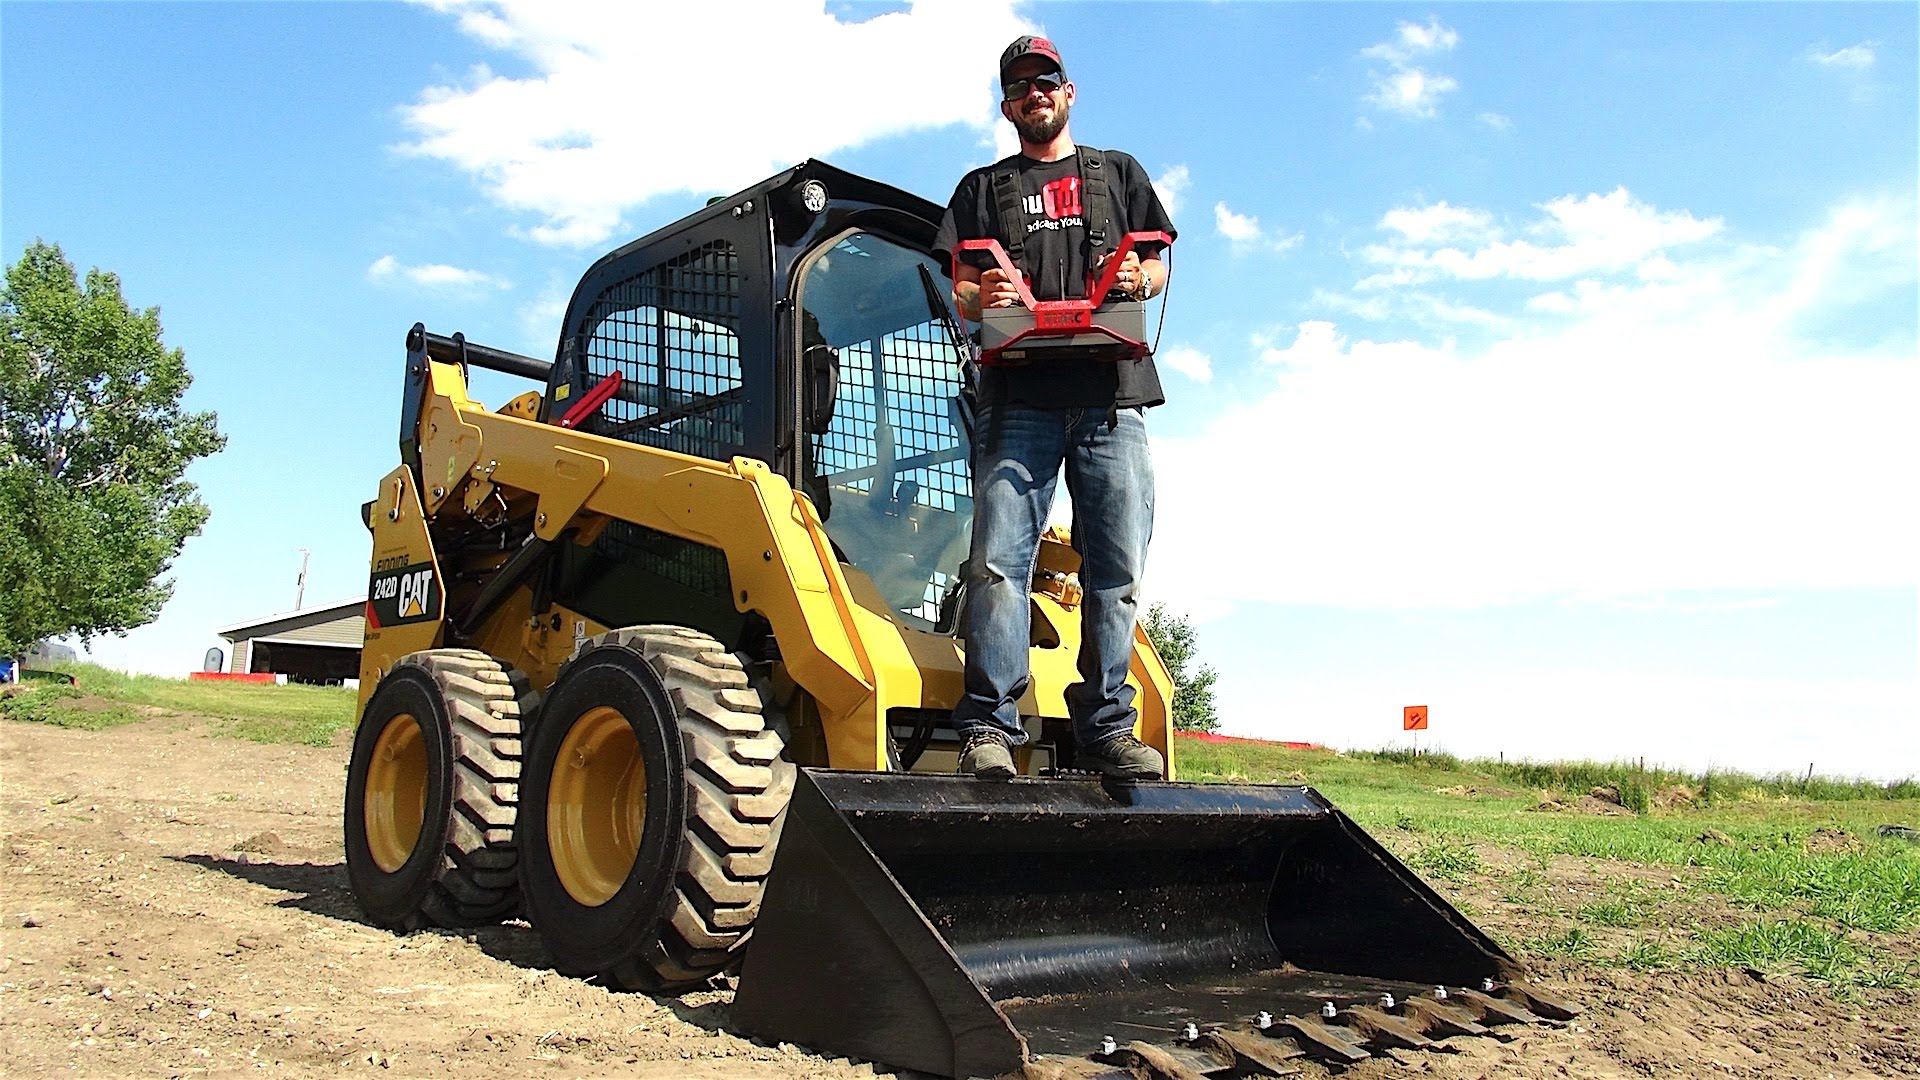 Isn't This RC 2016 Skid Steer 242D The Hugest Radio Control Land Vehicle You've Seen?